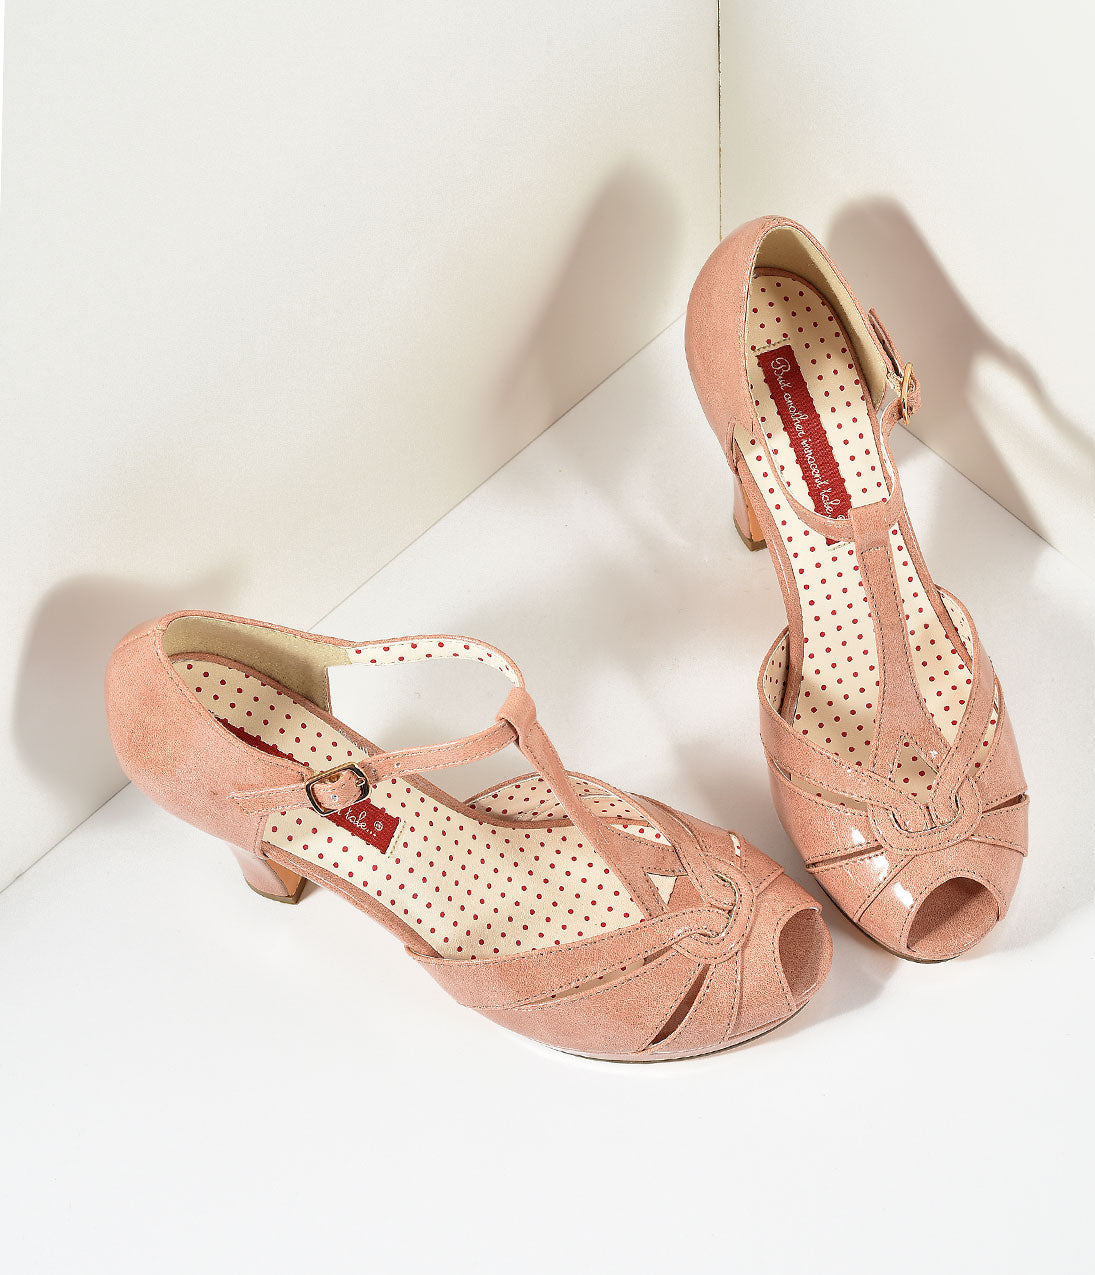 1950s Style Shoes B.A.I.T. Peach Patent Leatherette Peep Toe T-Strap Lacey Heels Shoes $75.00 AT vintagedancer.com